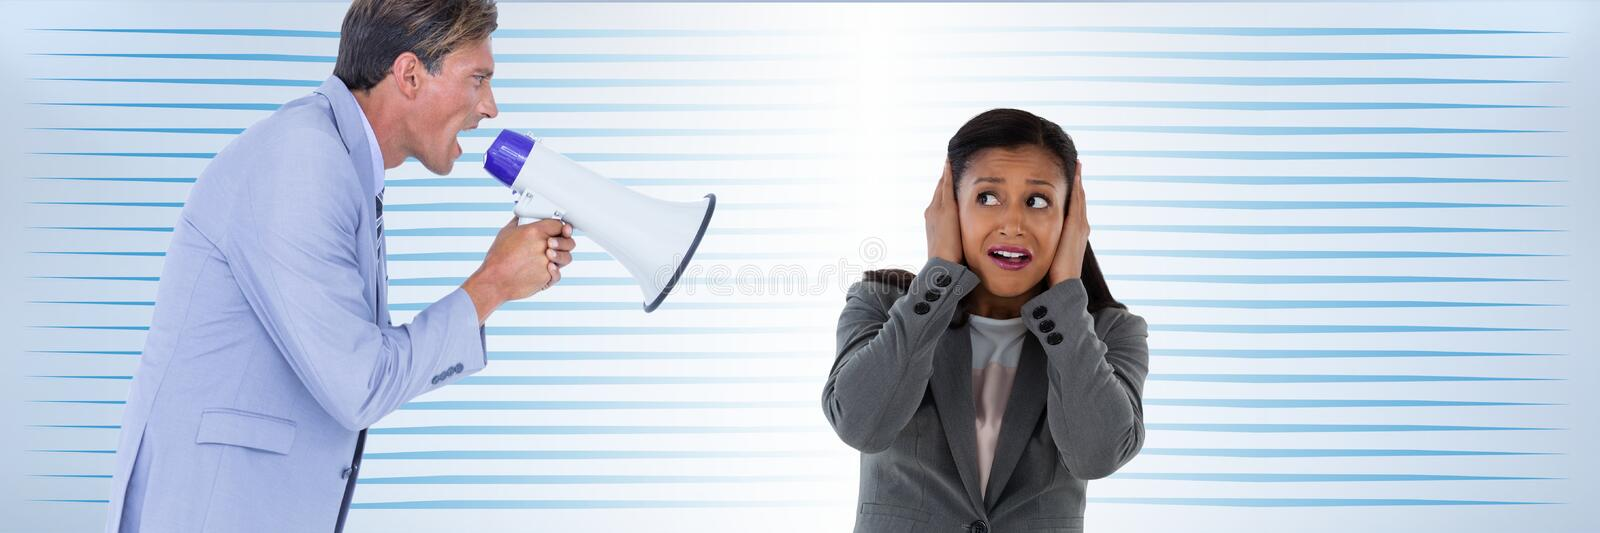 Man with megaphone screaming at woman stock image